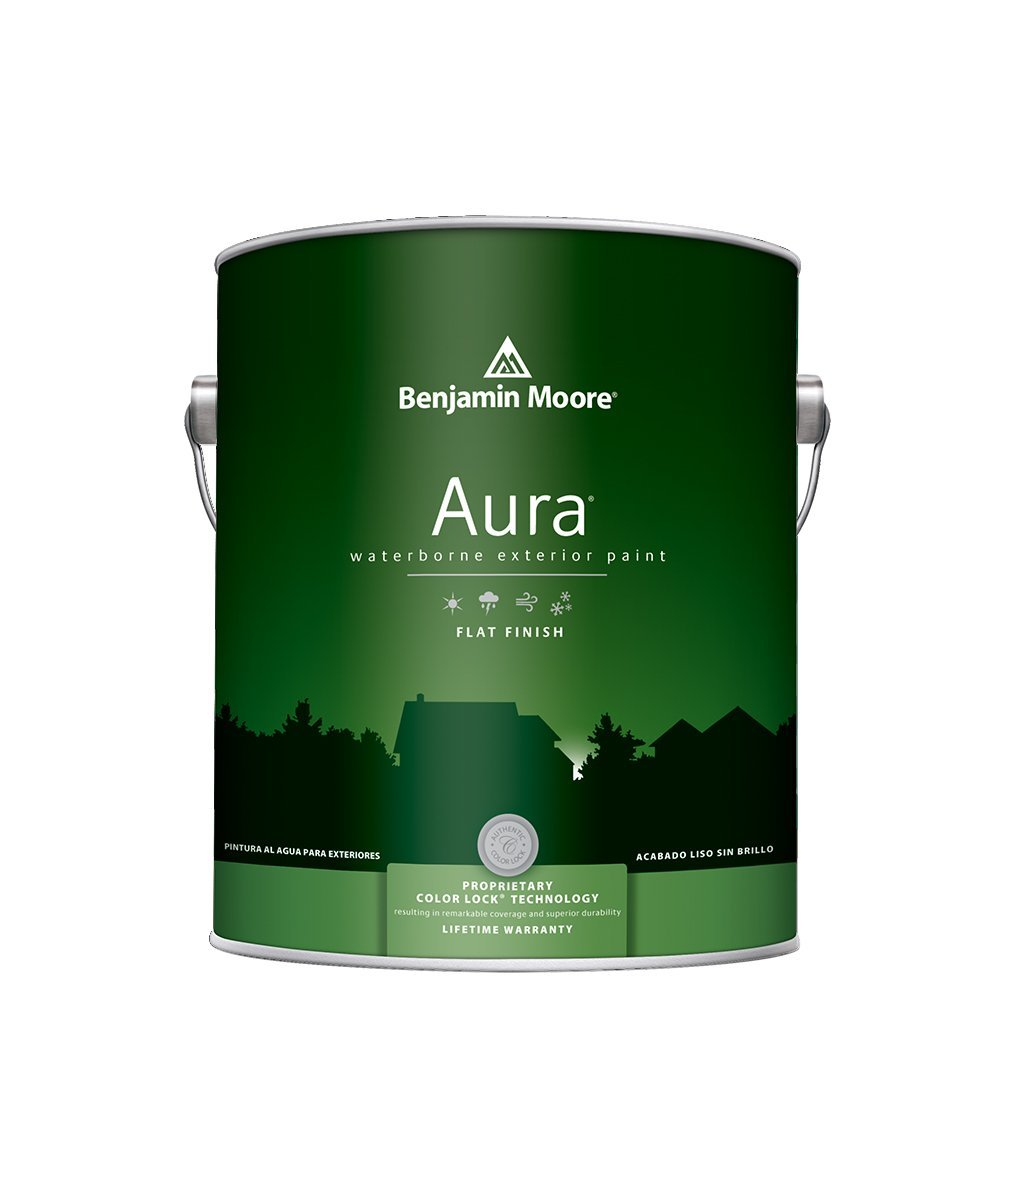 Benjamin Moore Aura Exterior Flat Paint available at Regal Paint Centers.